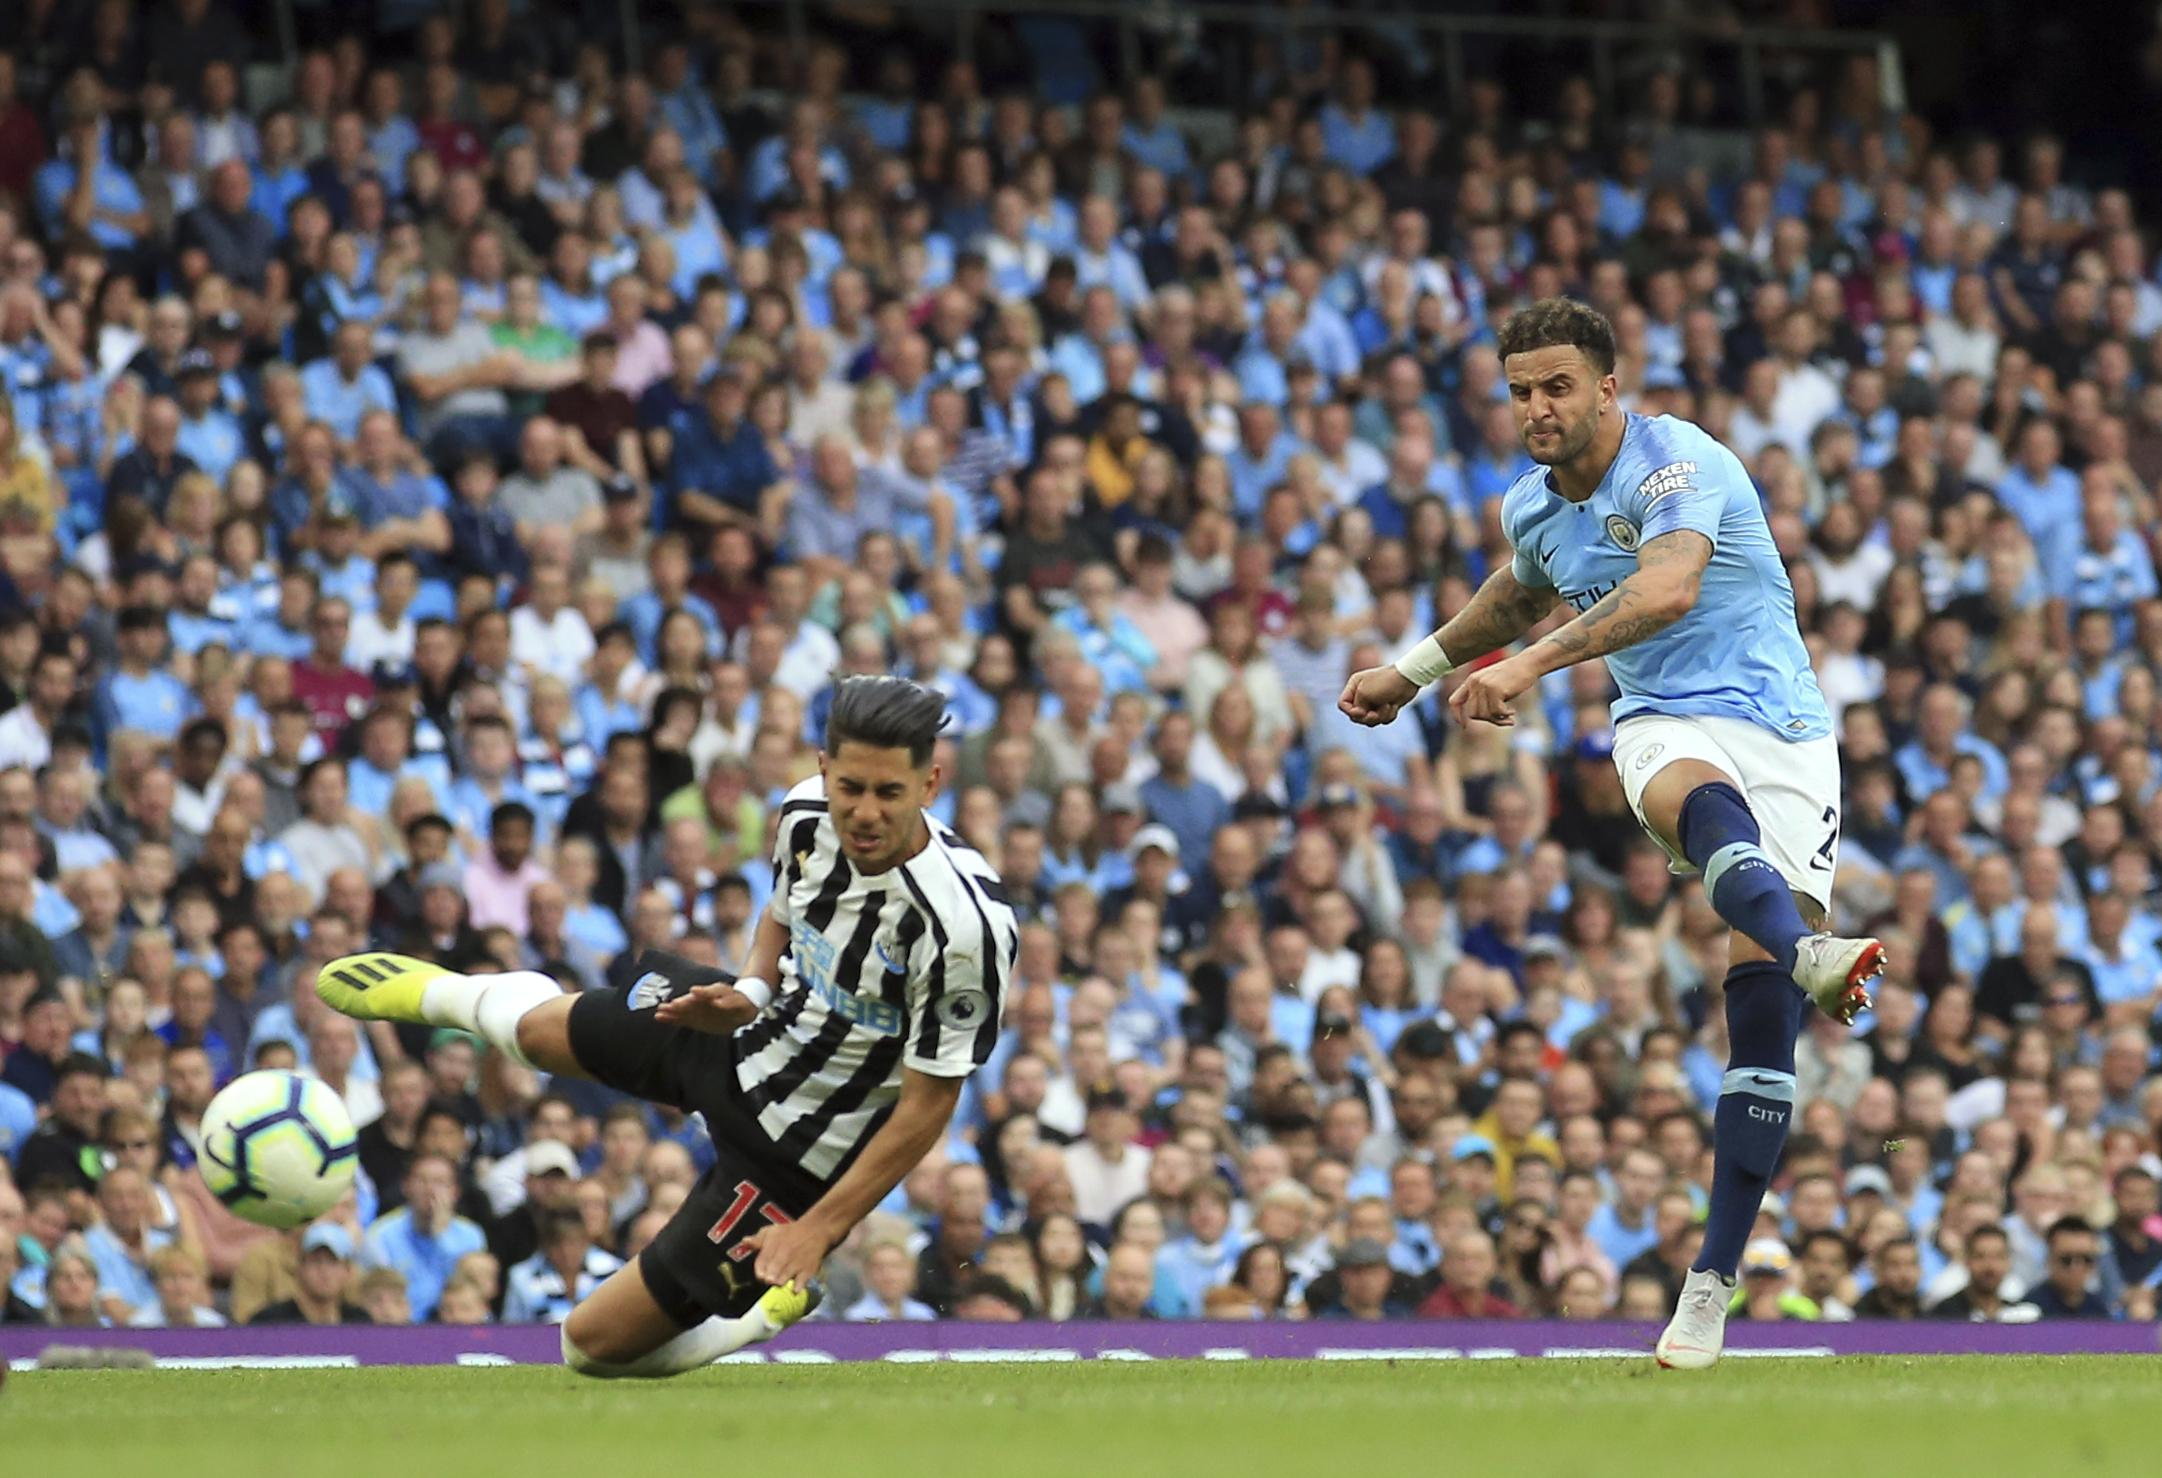 Kyle Walker scored the winner for the champions with a fantastic strike from distance